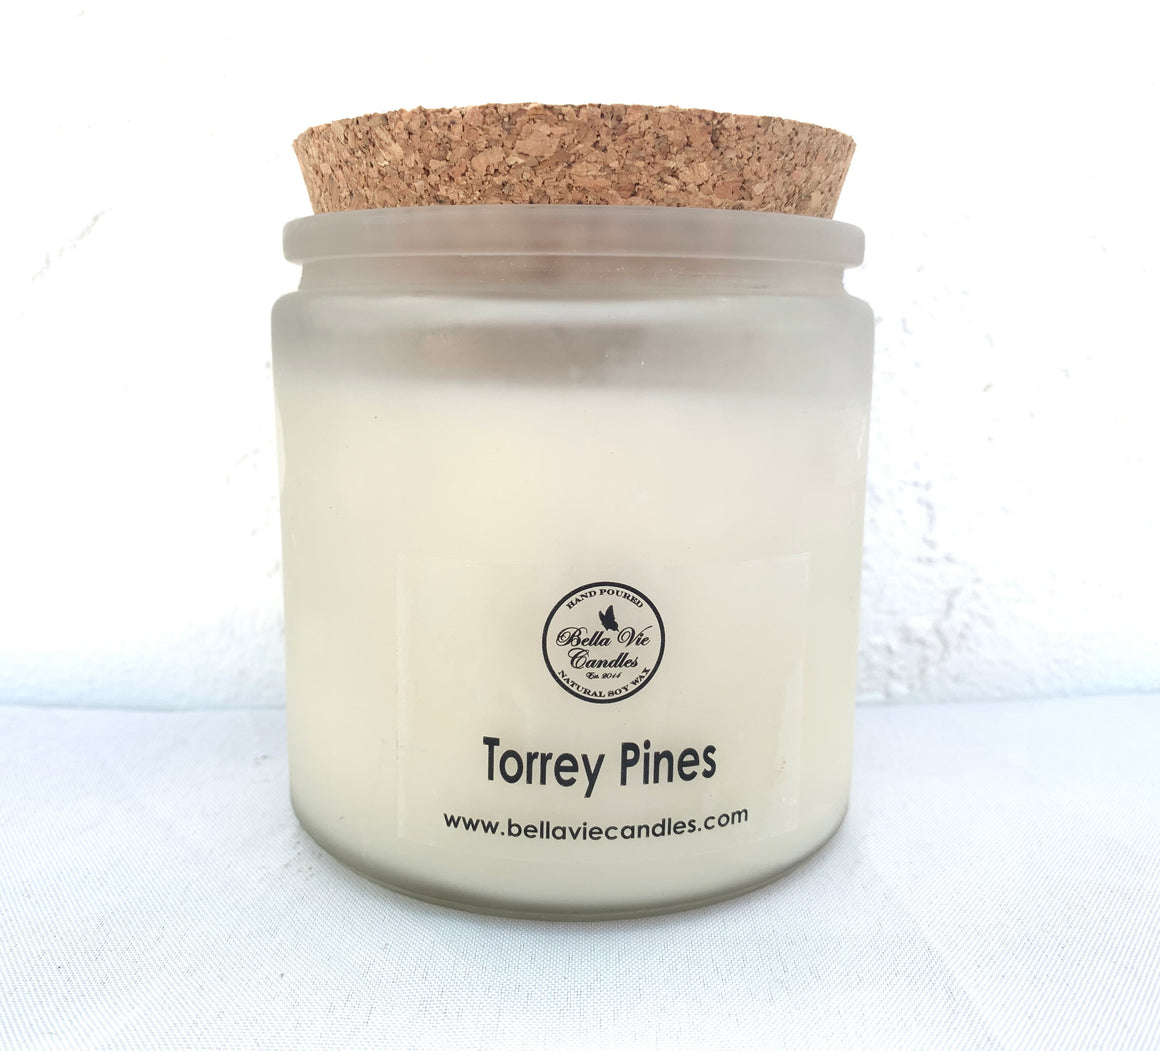 Torrey Pines Soy candle